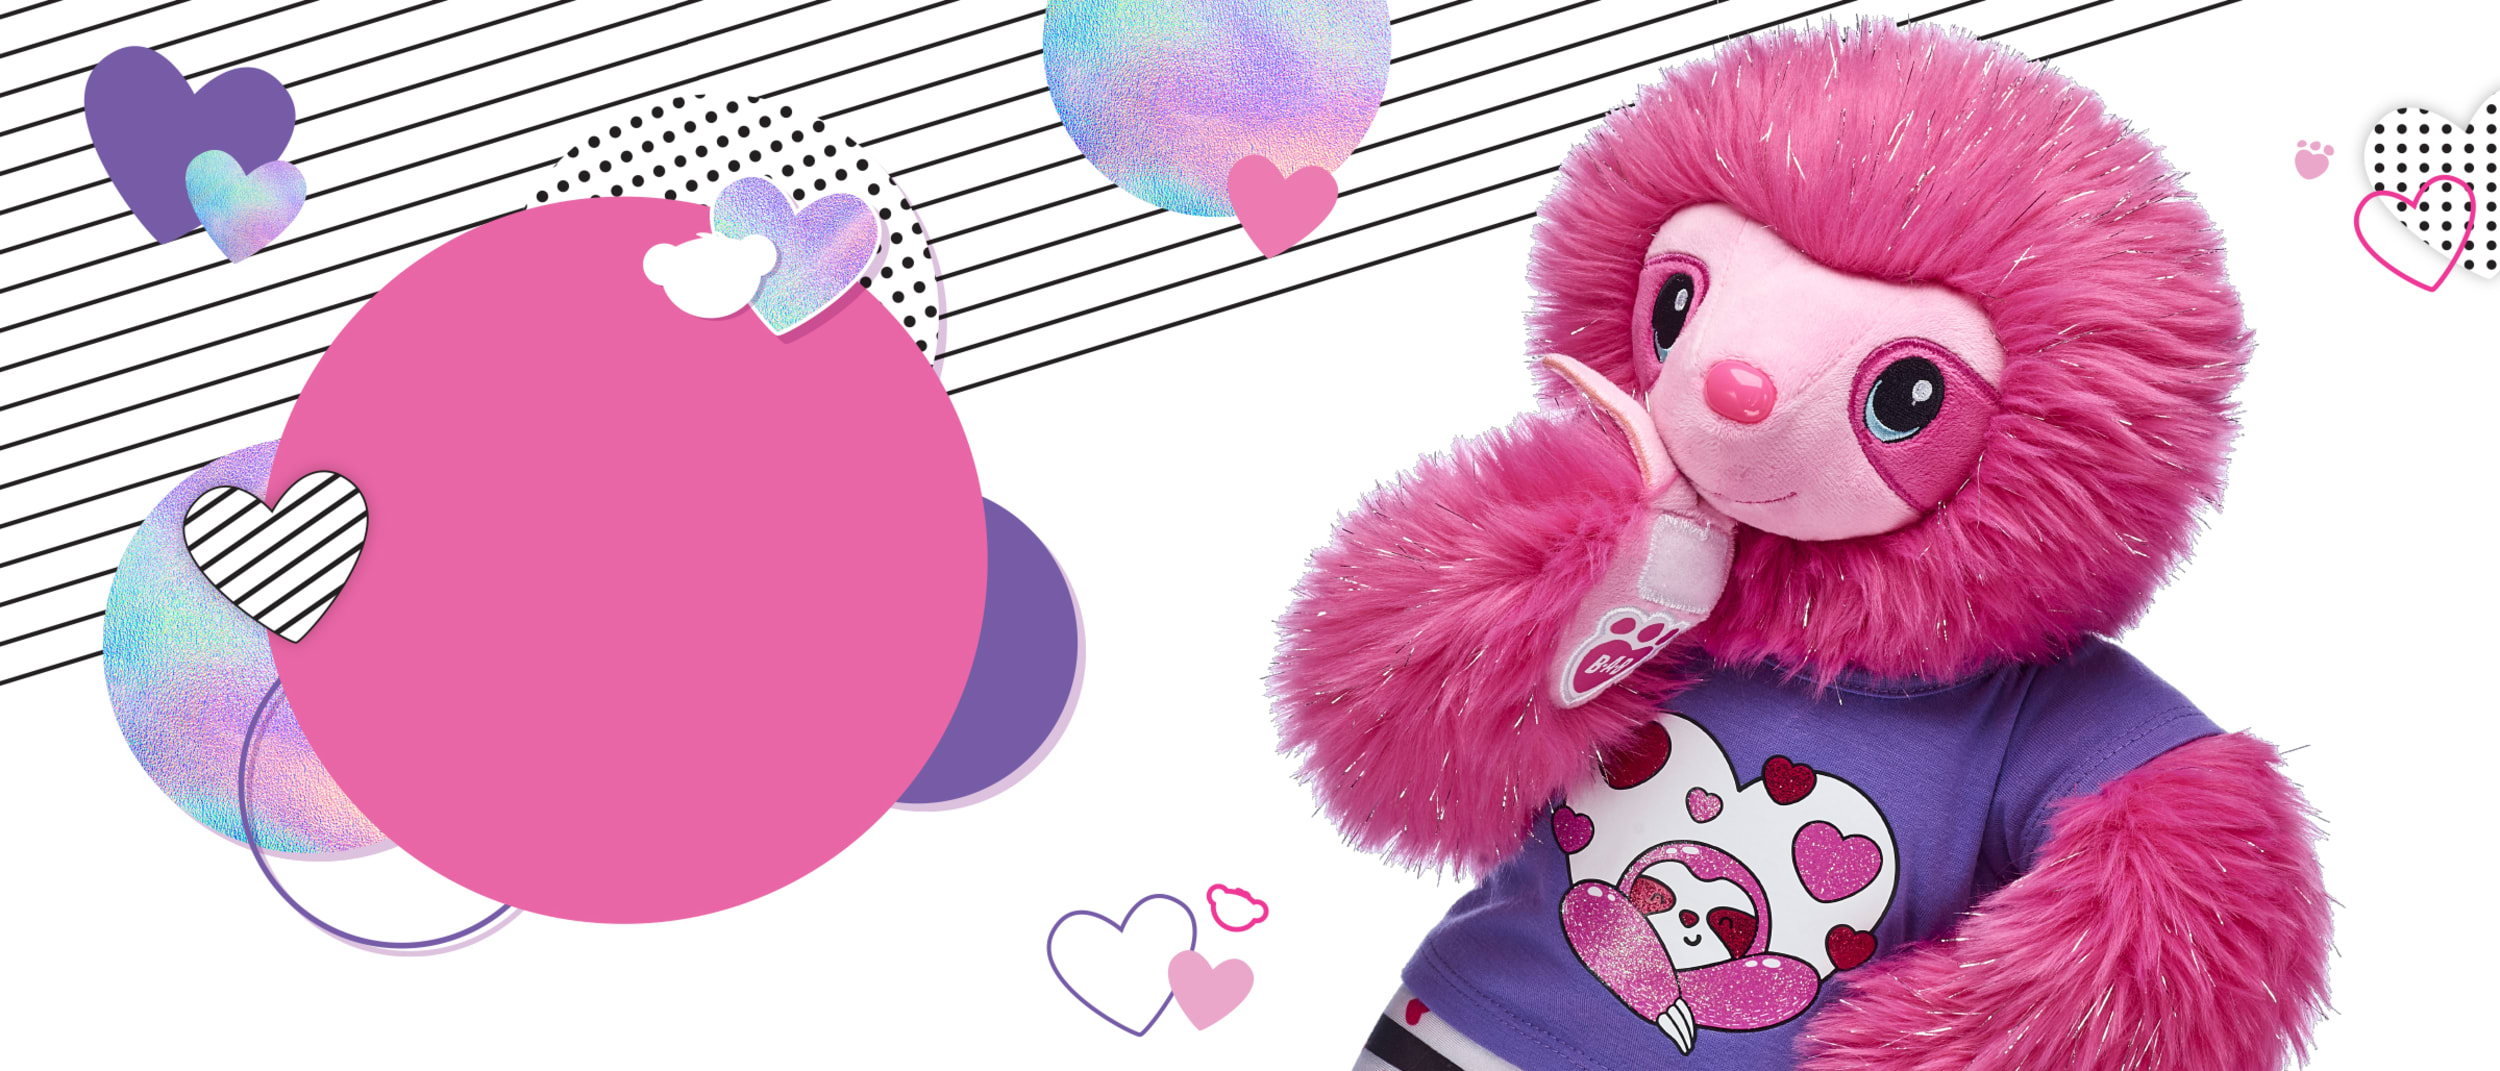 Pink Fuzzy Sloth has arrived at Build-A-Bear Workshop